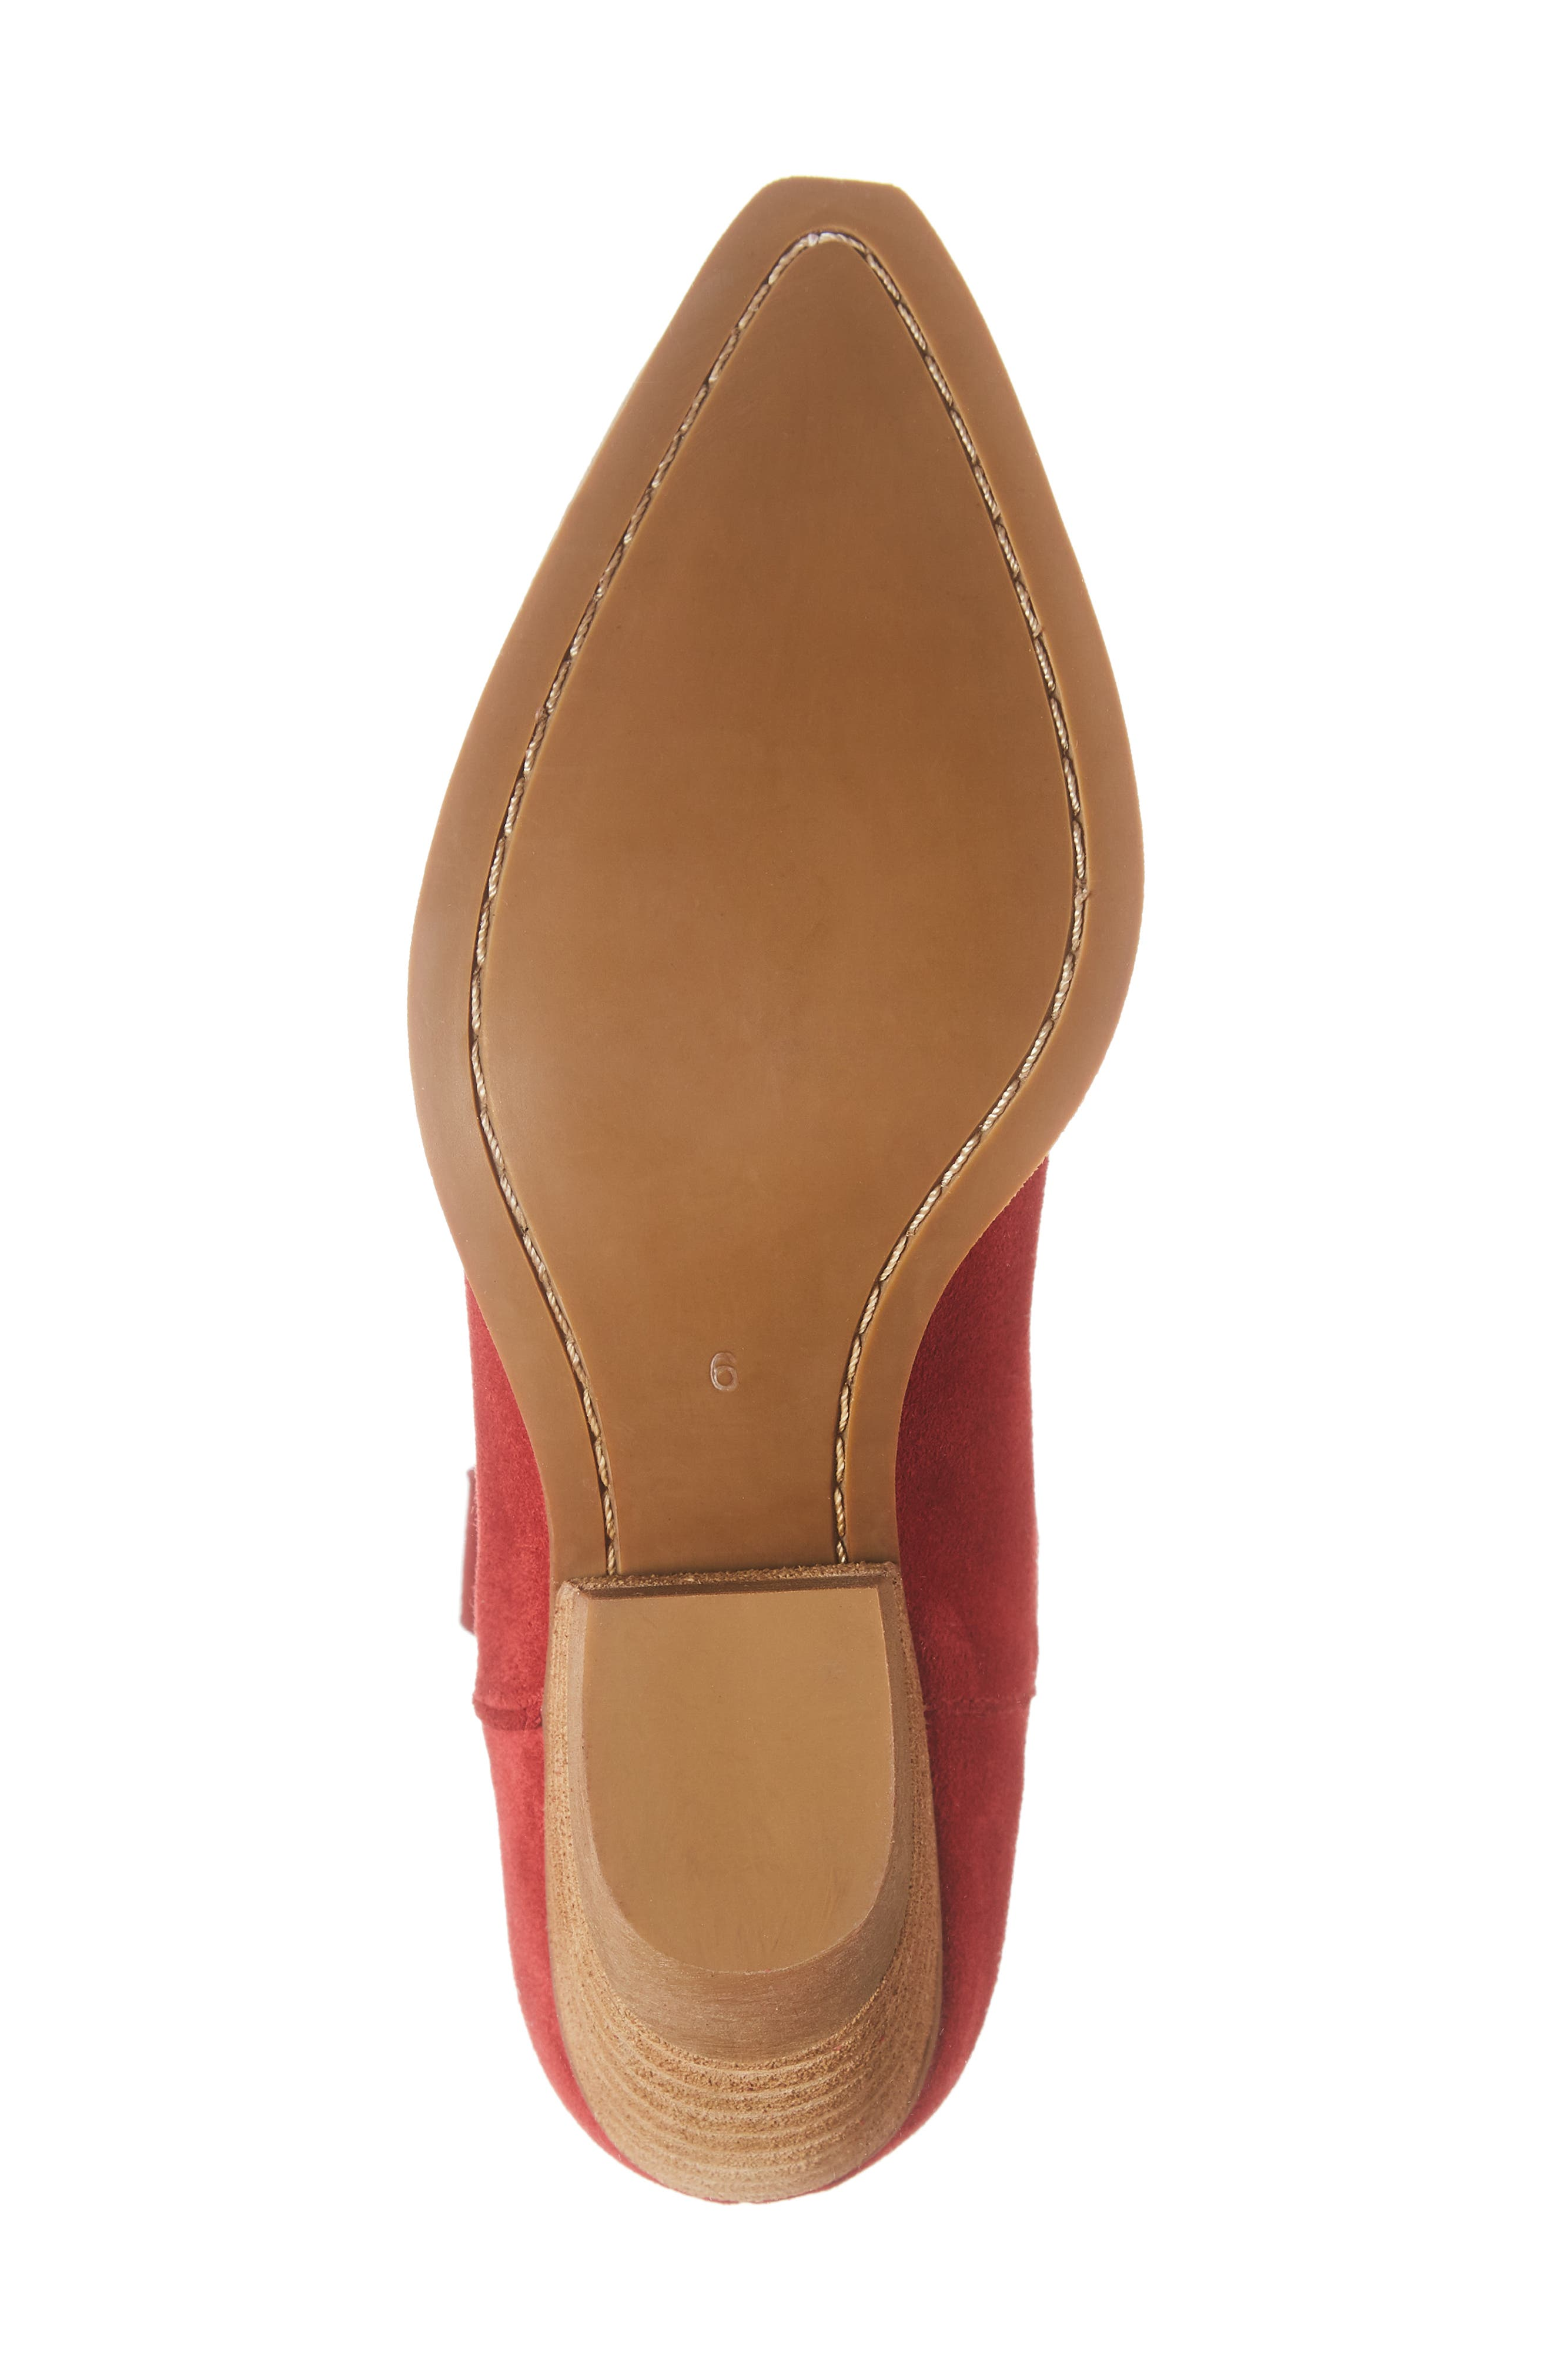 Calvera Western Boot,                             Alternate thumbnail 6, color,                             RED SUEDE